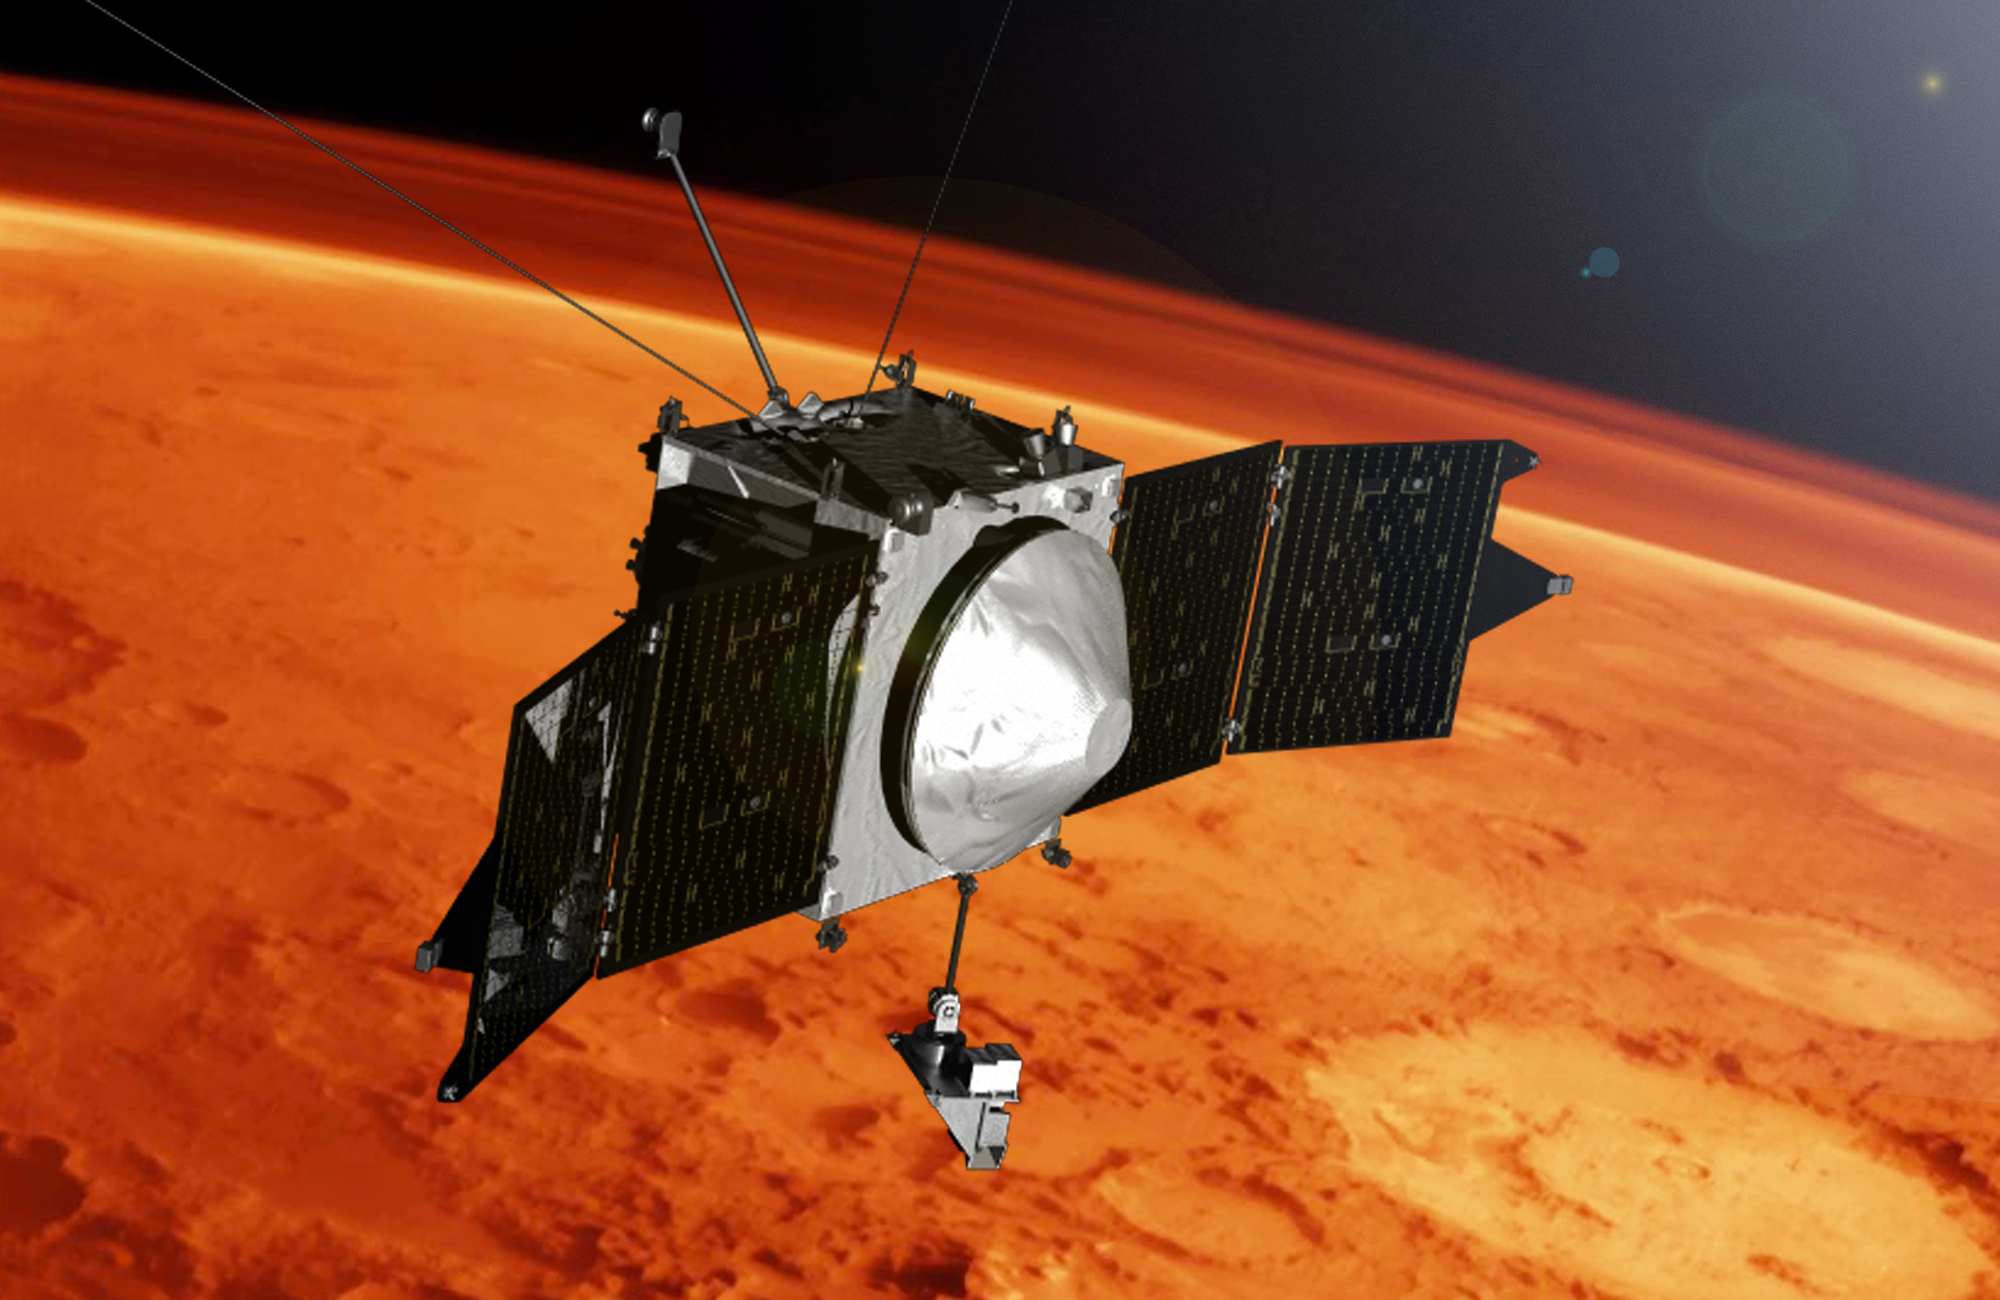 maven nasa - photo #14